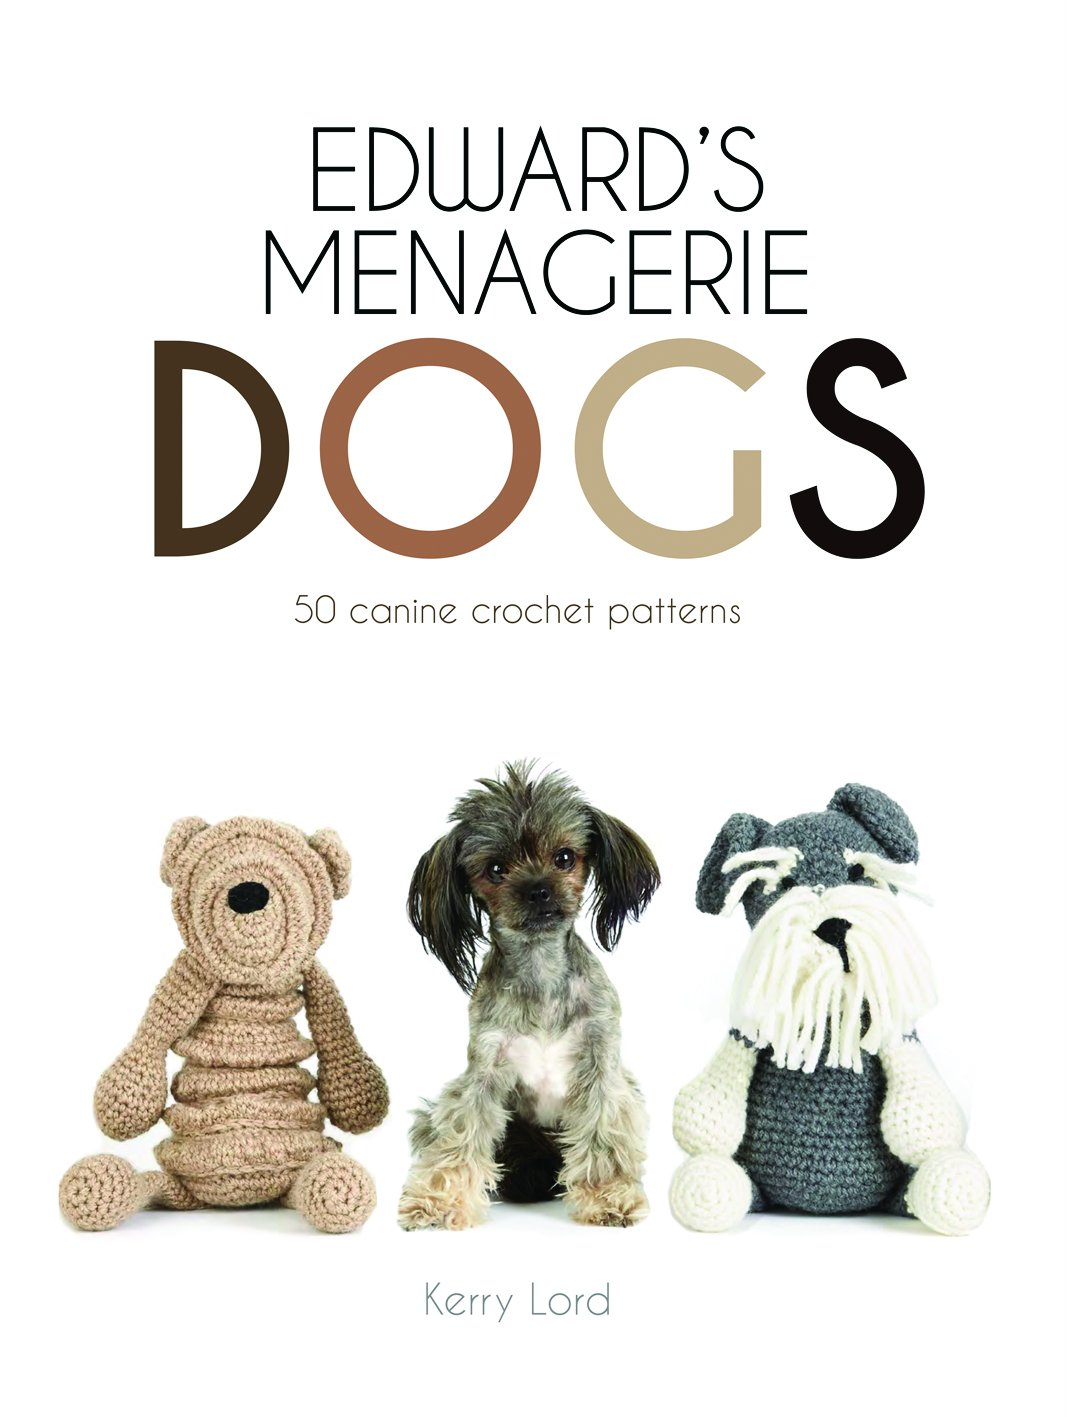 Edward's Menagerie: Dogs: 50 canine crochet patterns: Amazon